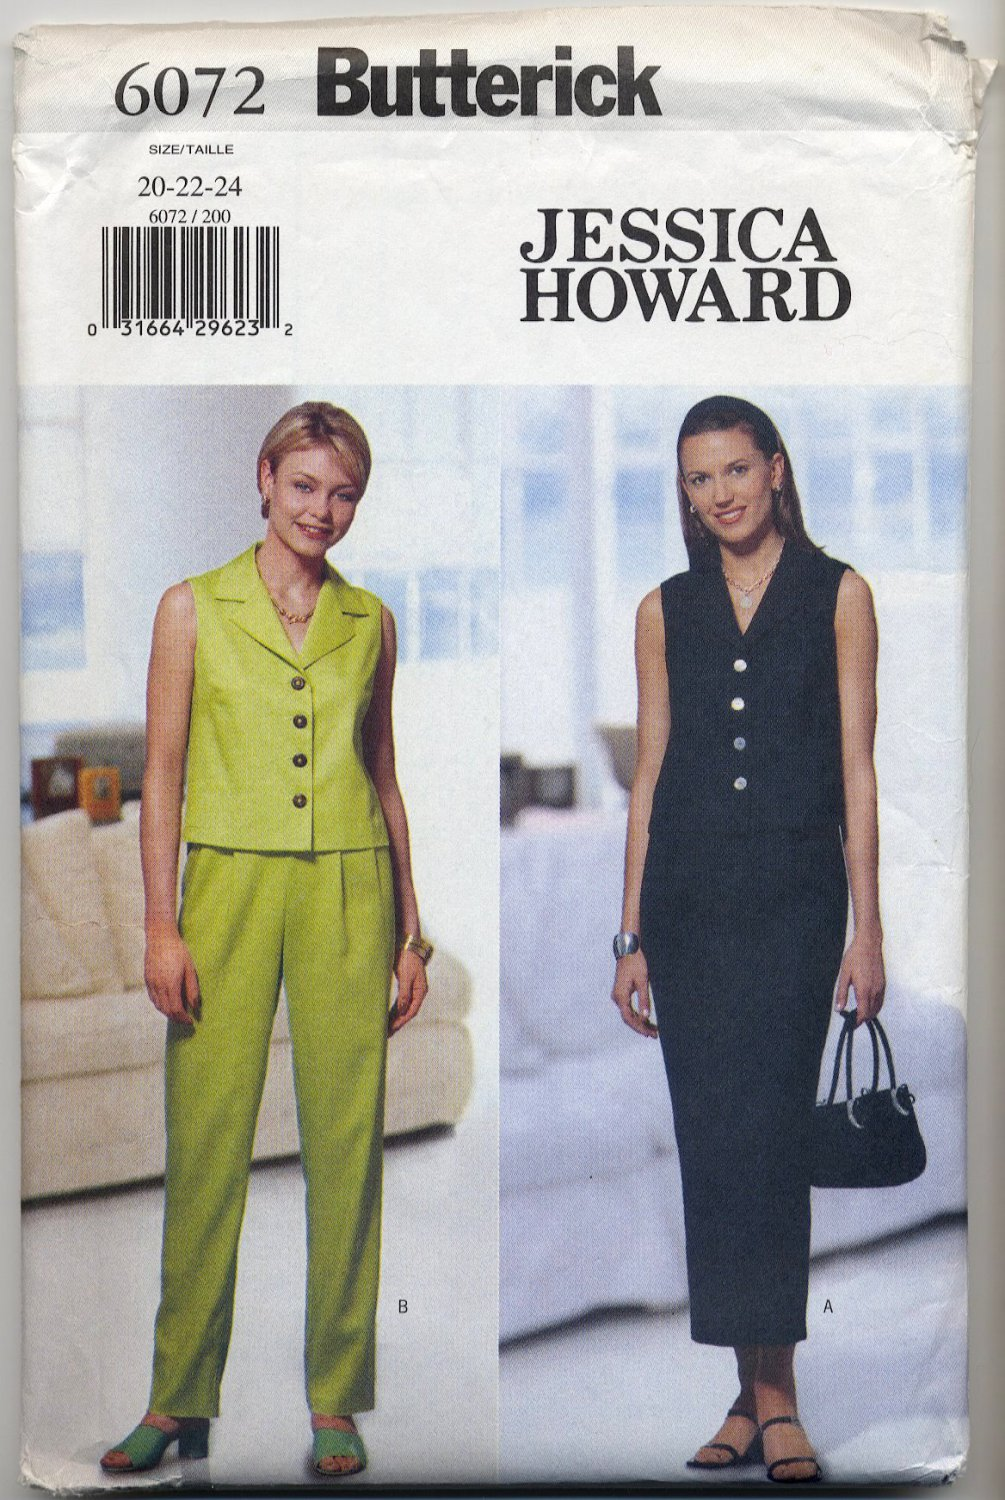 Butterick 6072 Designer Jessica Howard - Top Skirt & Pants Sewing Pattern - Misses' 20 22 24